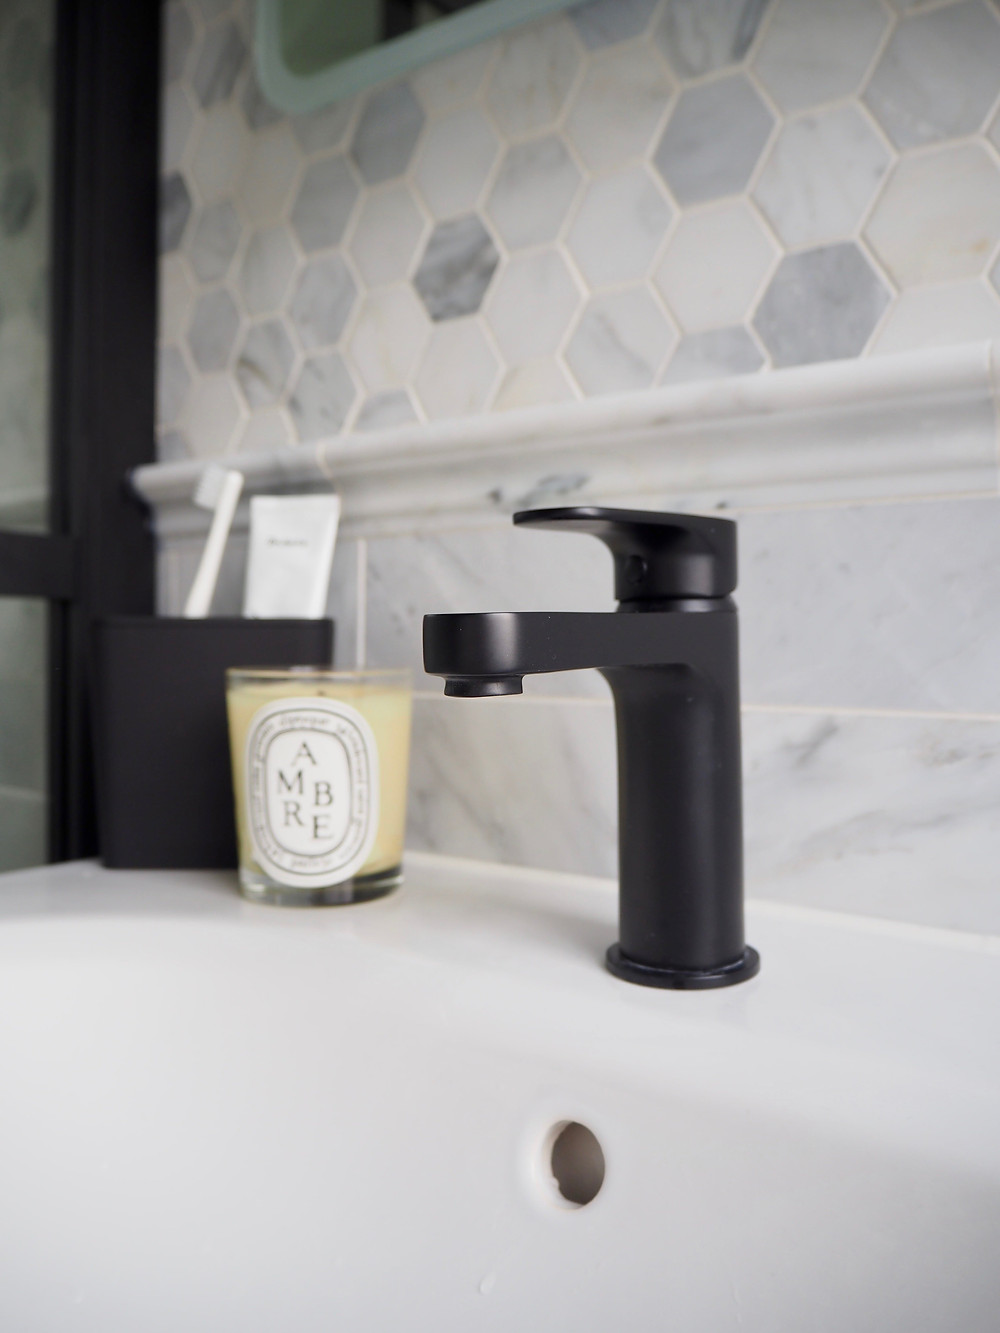 Methven Breeze Matt Black washbasin mixer tap and marble hexagon tiles from Mandarin Stone, VitrA Frame sink vanity